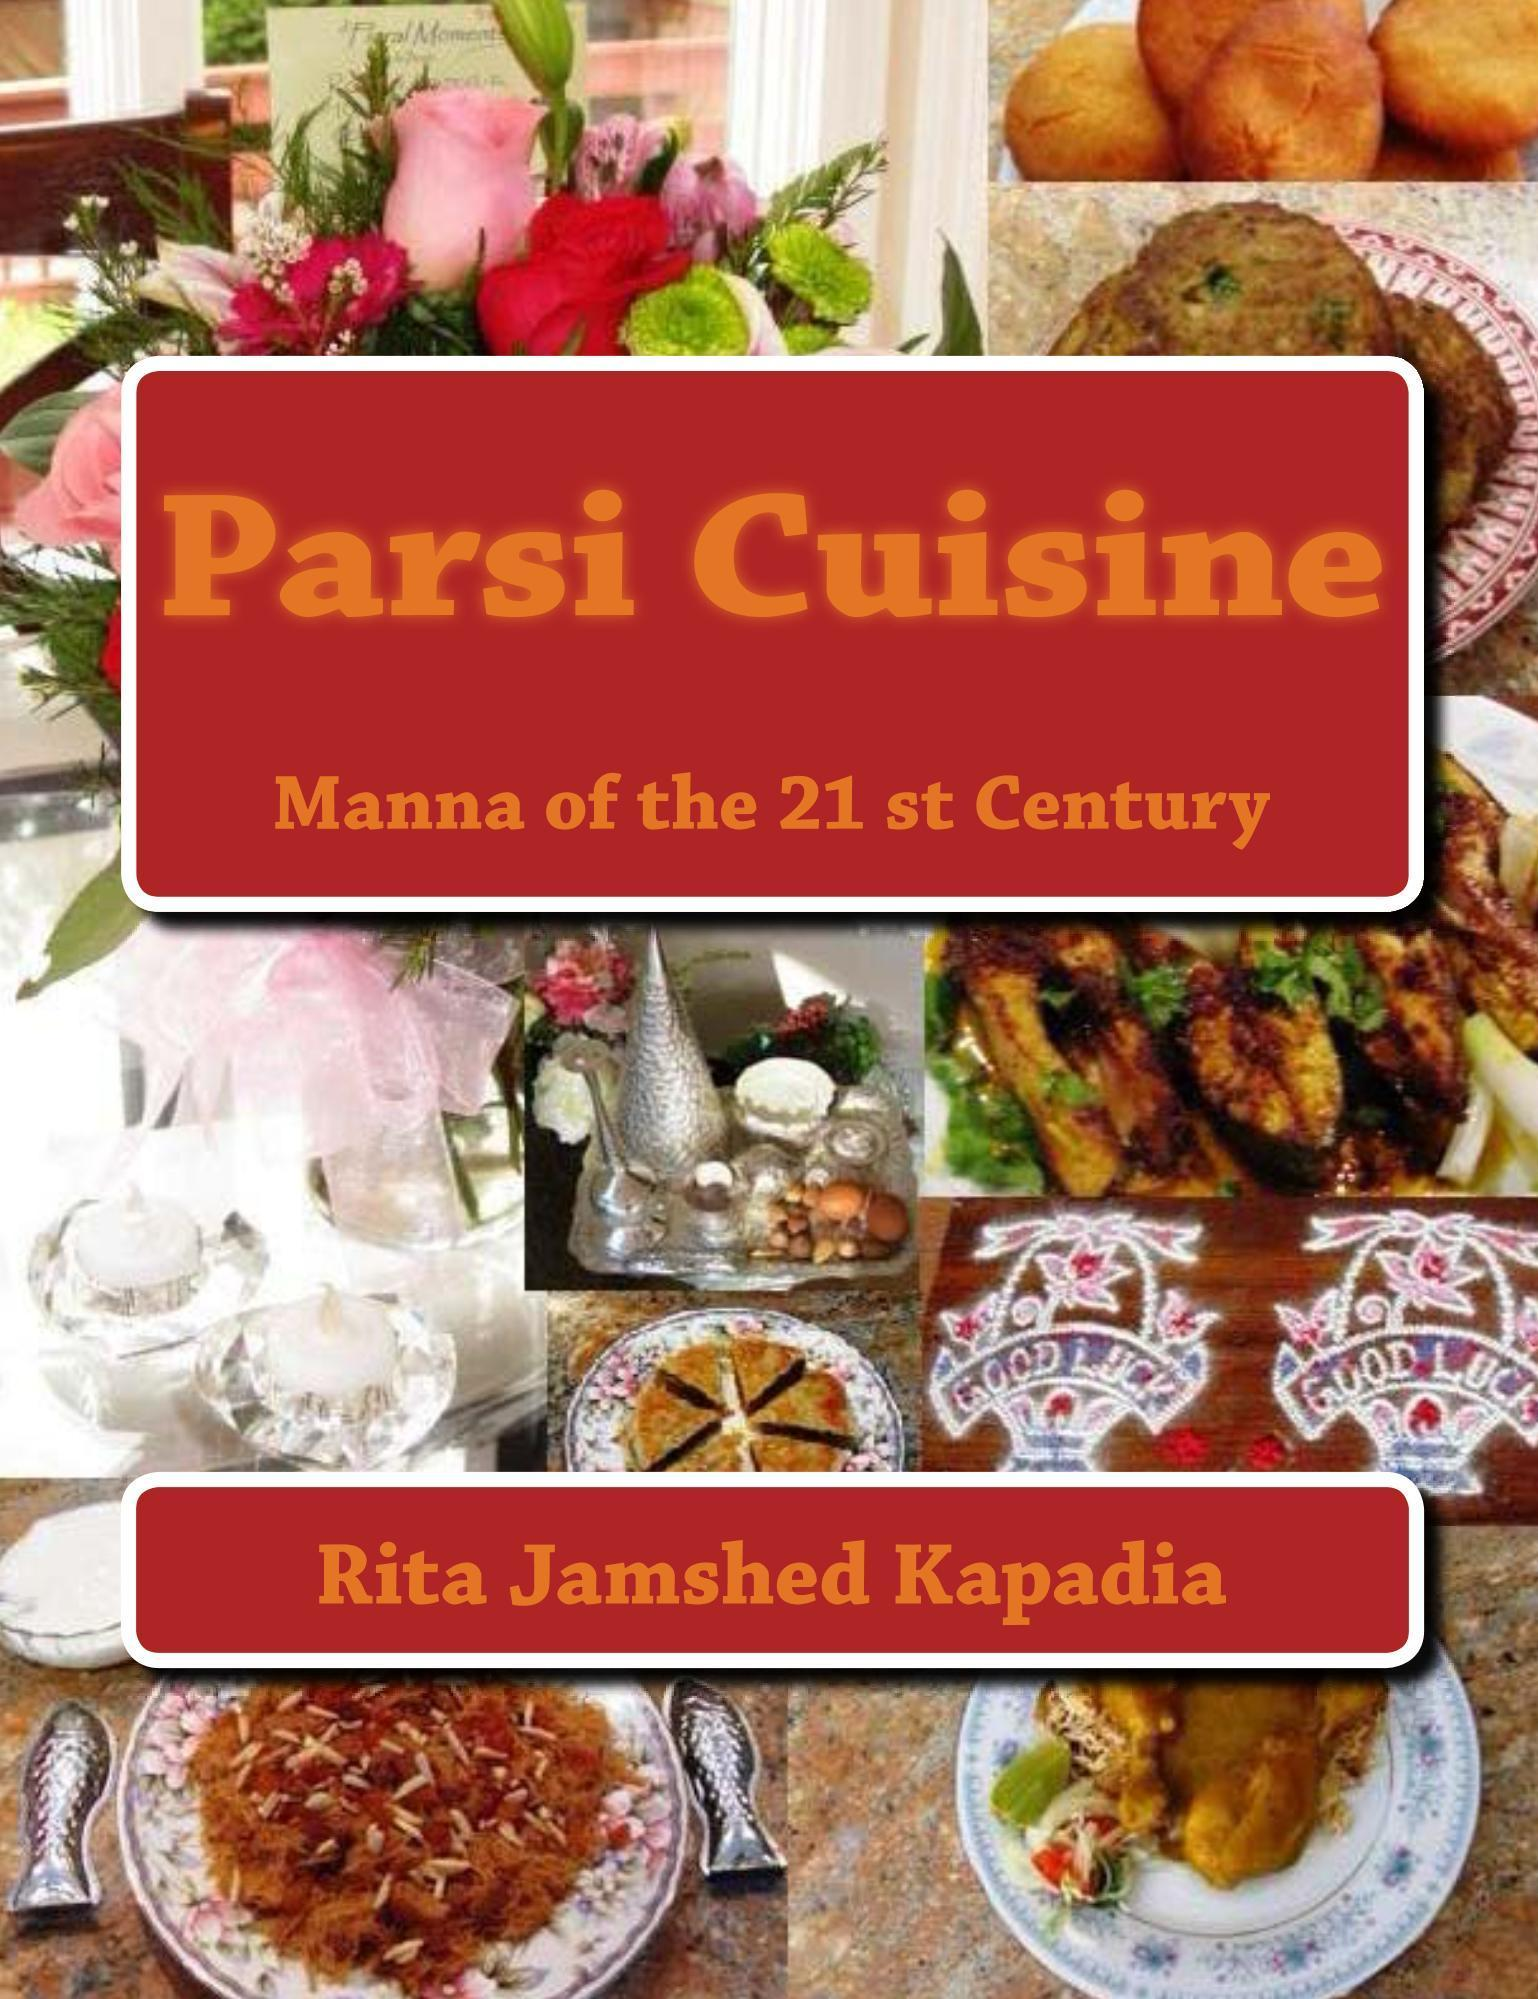 Cookbook: Parsi Cuisine Manna of the 21st Century